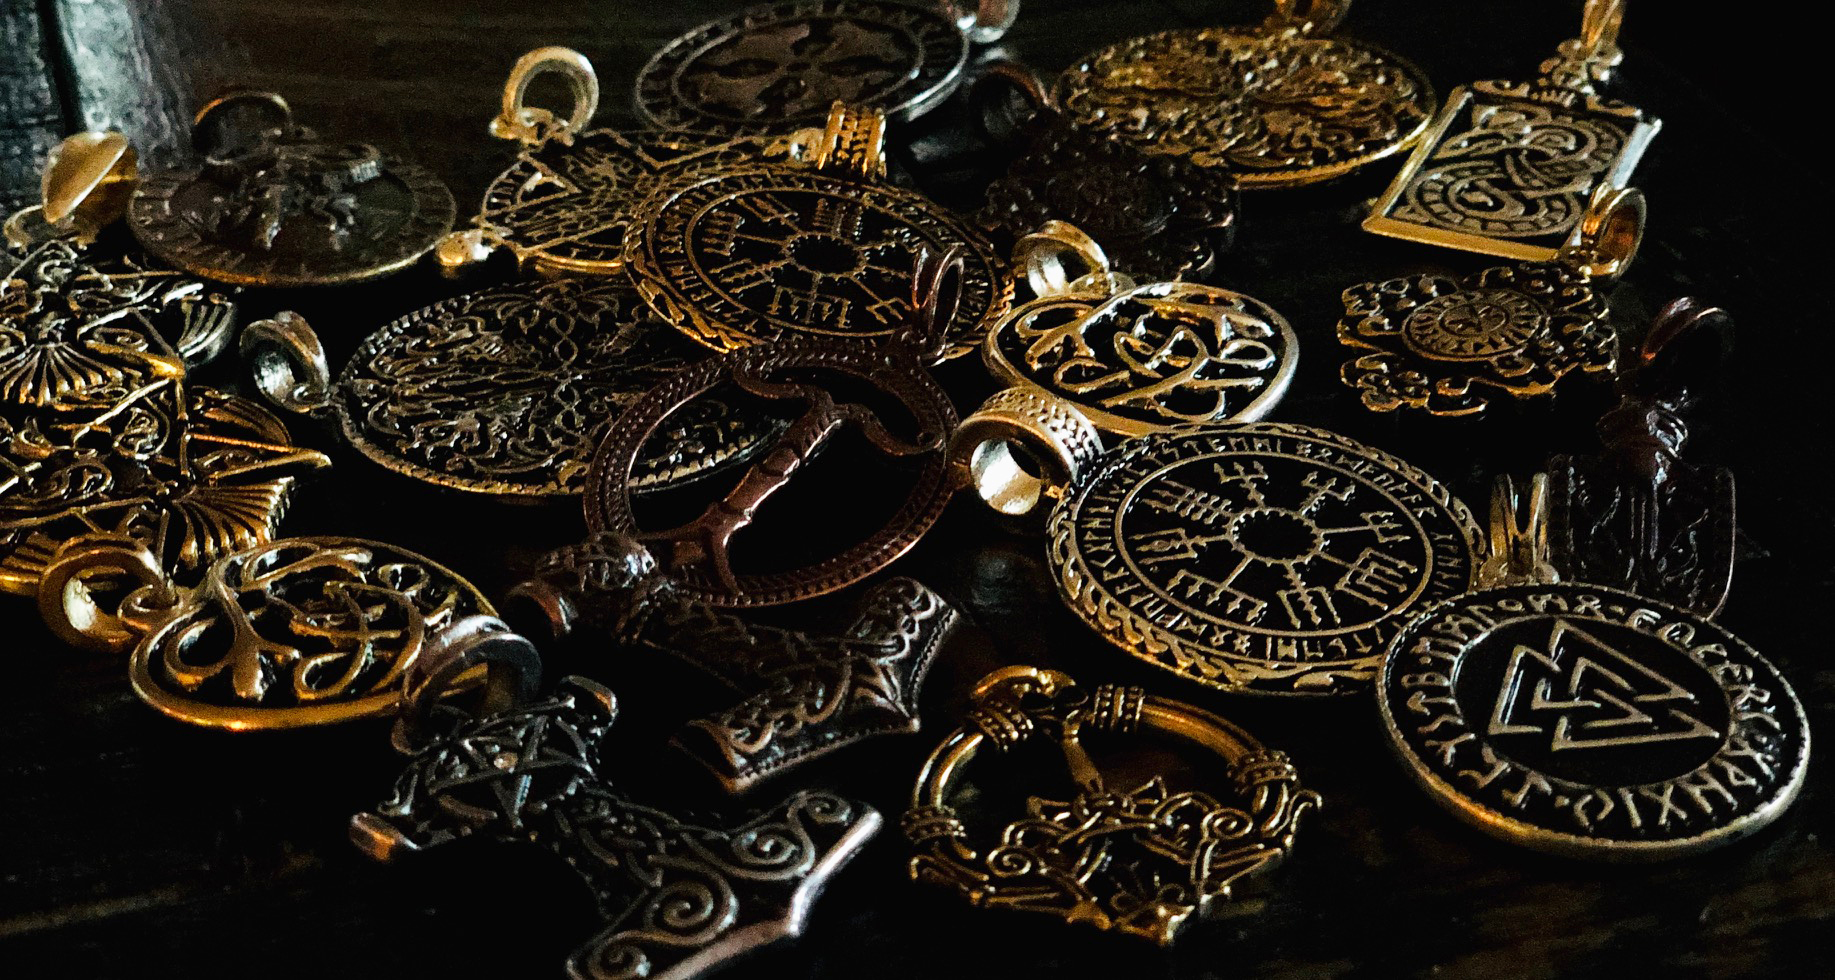 viking-norse-jewelry-necklaces-amulets.jpg